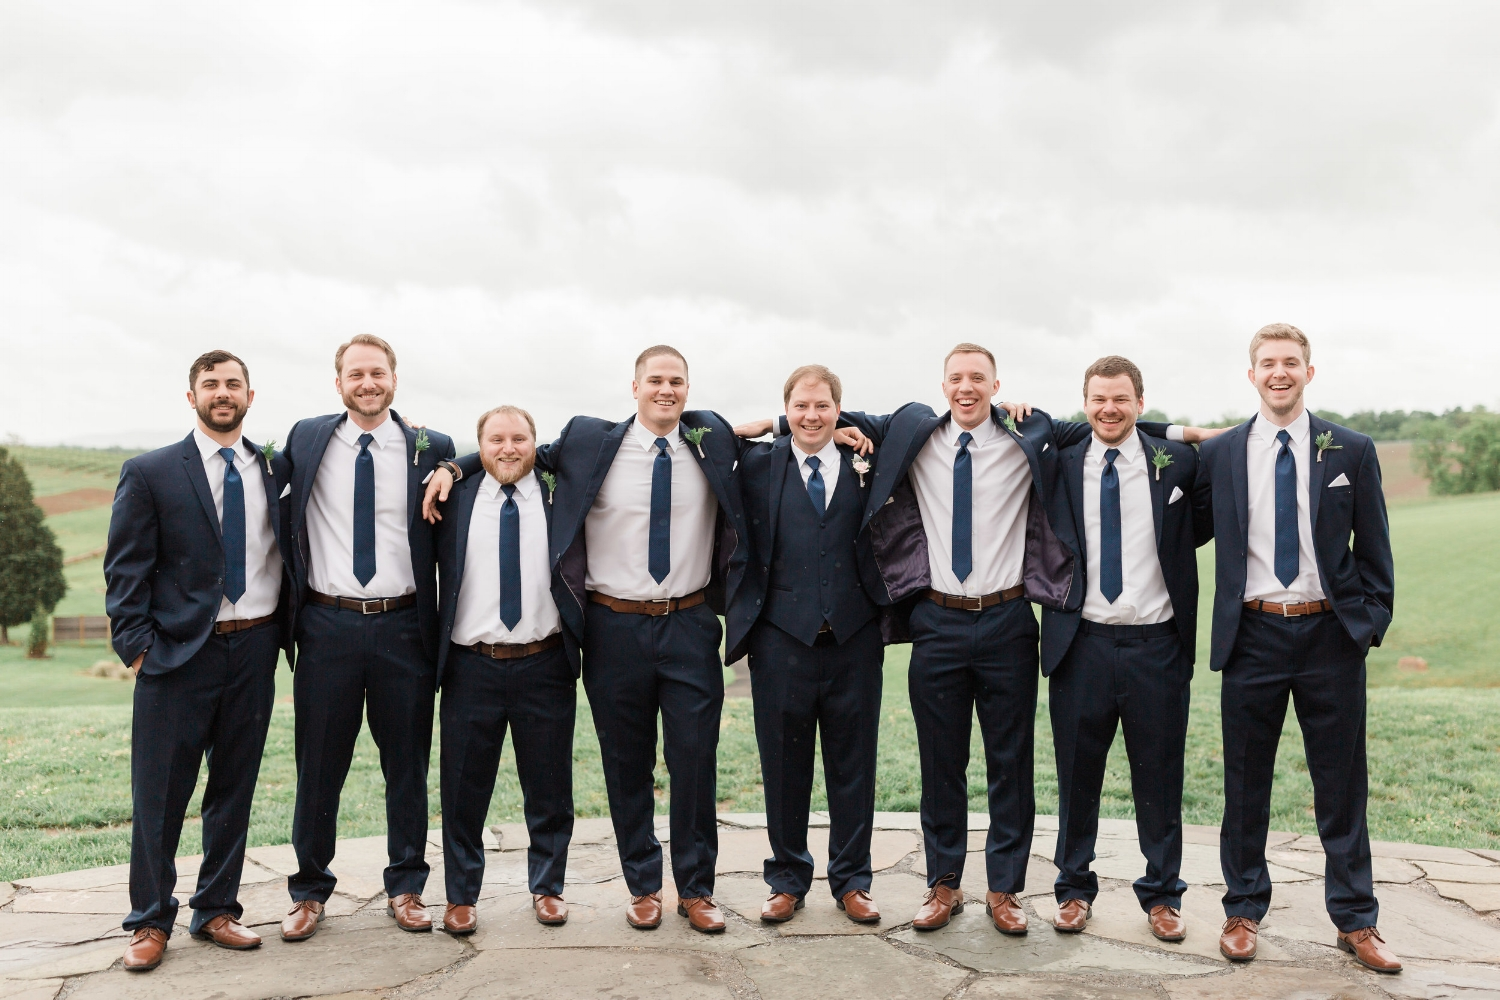 Andrew and his groomsmen ready for the wedding. You couldn't pose this picture!